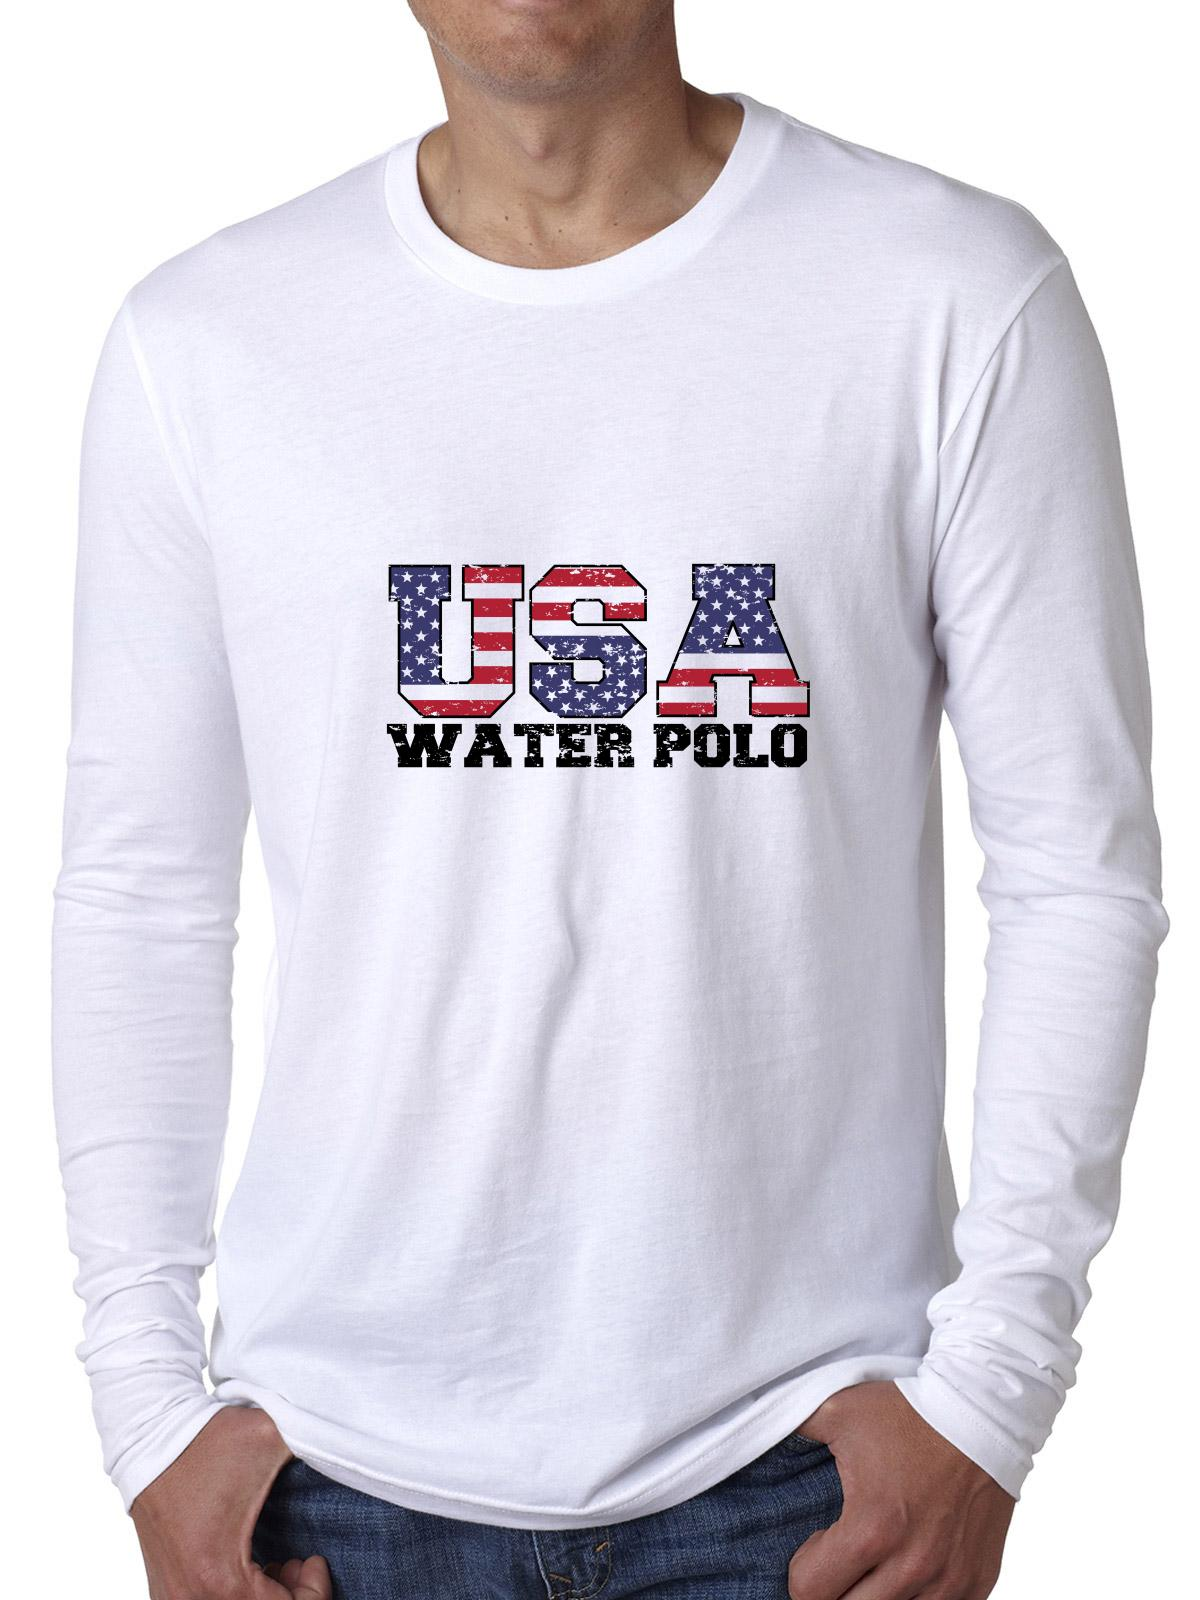 USA Olympics Water Polo Vintage Letters Men's Long Sleeve T-Shirt by Hollywood Thread